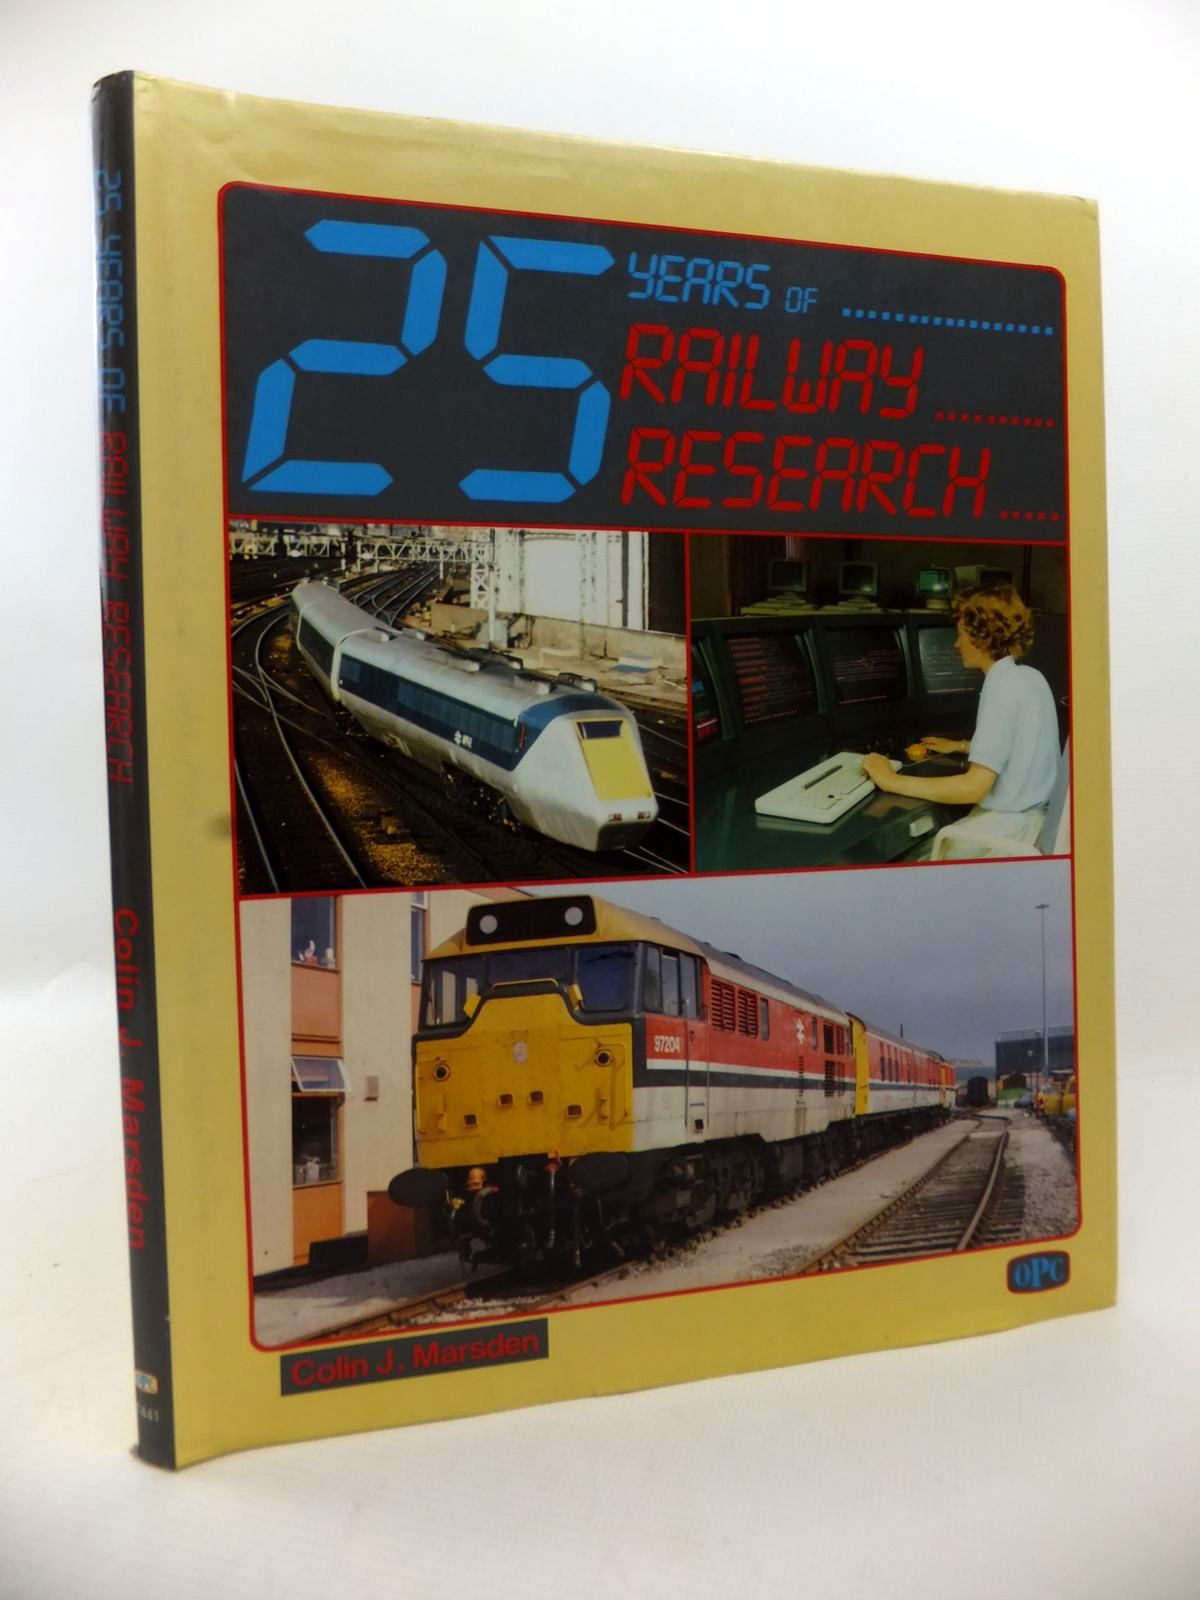 Photo of 25 YEARS OF RAILWAY RESEARCH written by Marsden, Colin J. published by Haynes, Oxford Publishing Co (STOCK CODE: 1813426)  for sale by Stella & Rose's Books